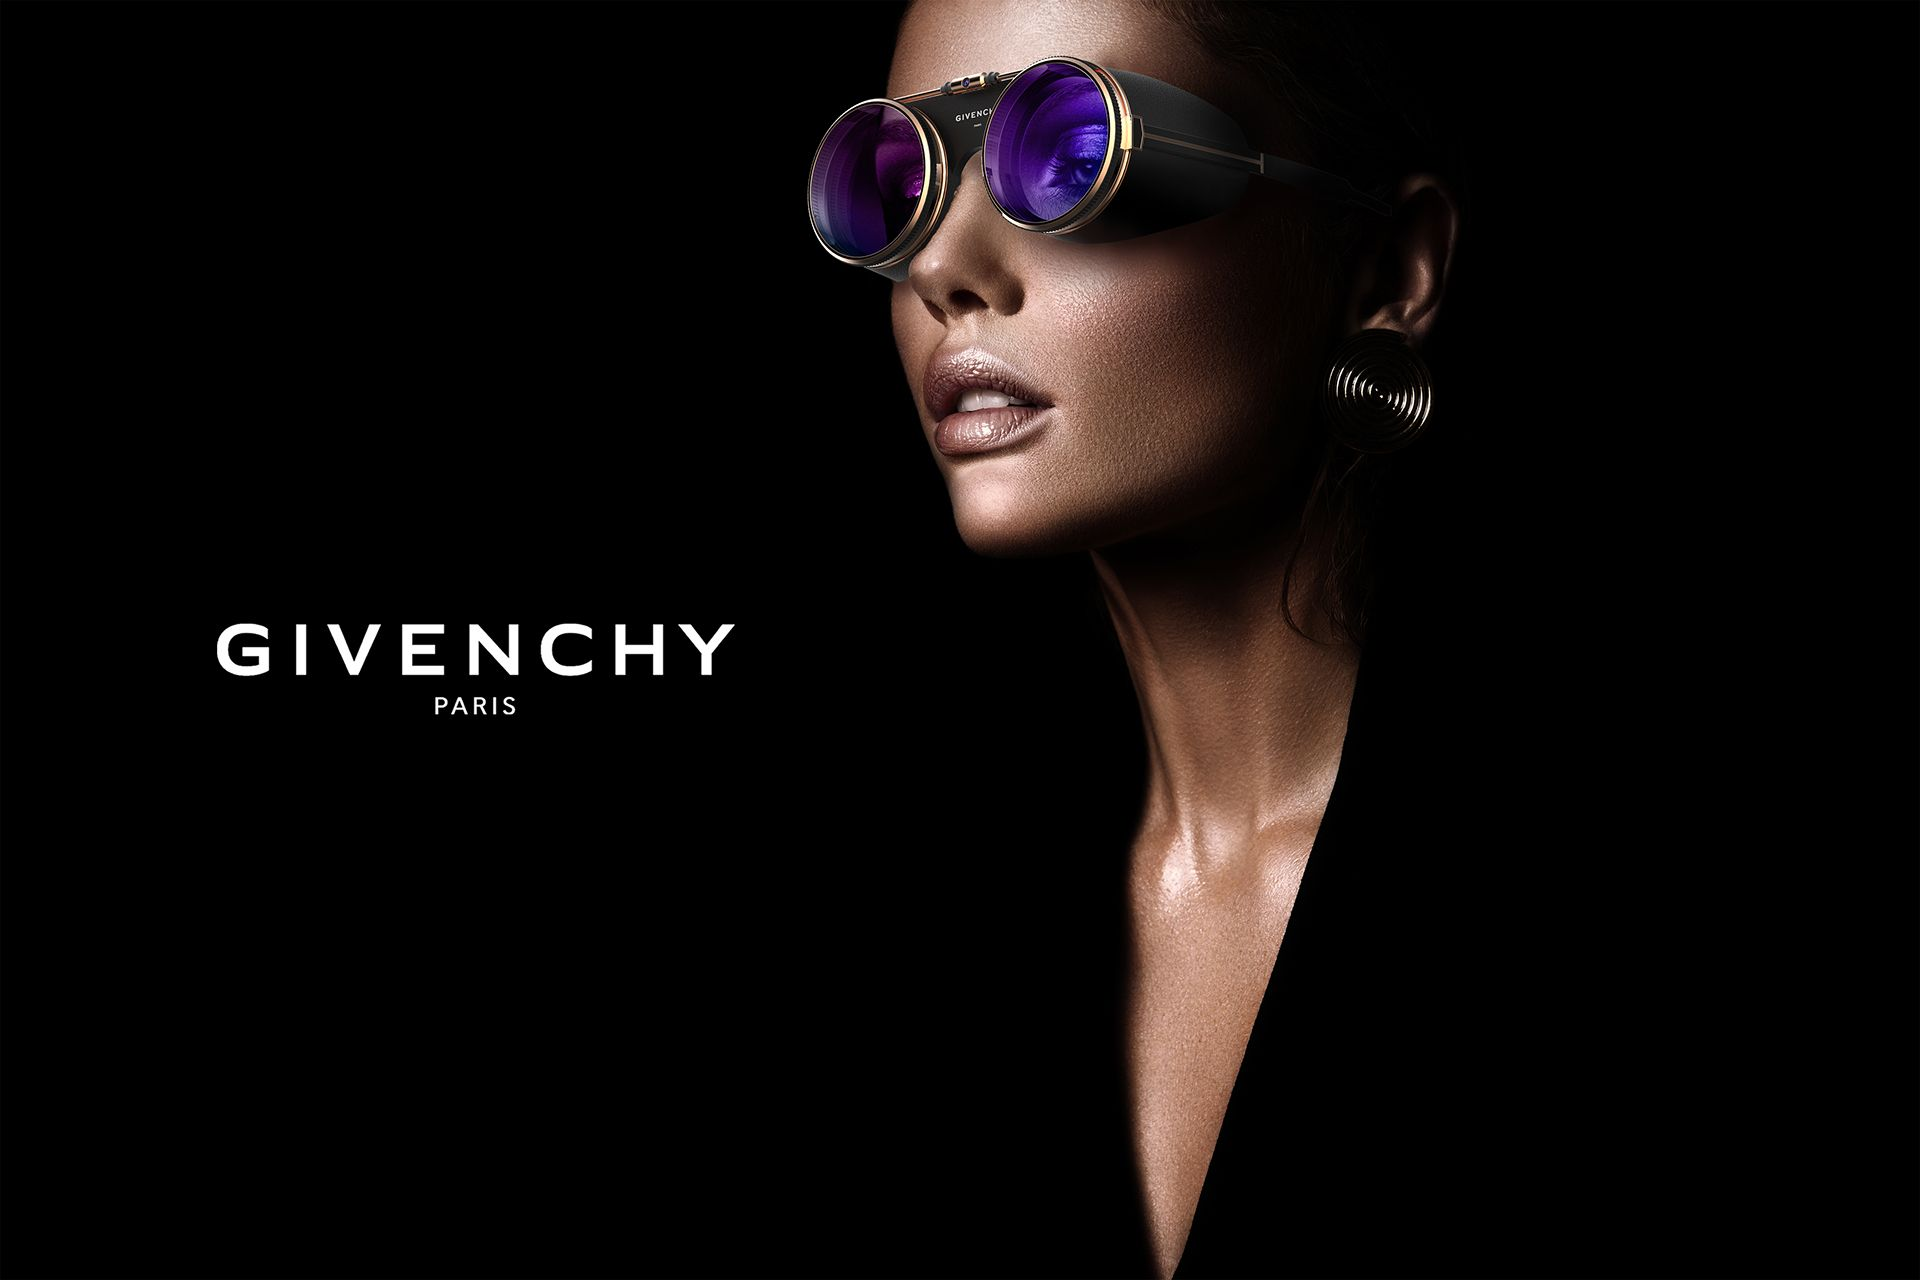 Bladerunner2049 Nexus 8 Givenchy Vr Concept Psychedelic Phlox Goggles Eyewearfashion Vr Goggles Eyewear Inspiration Augmented Reality